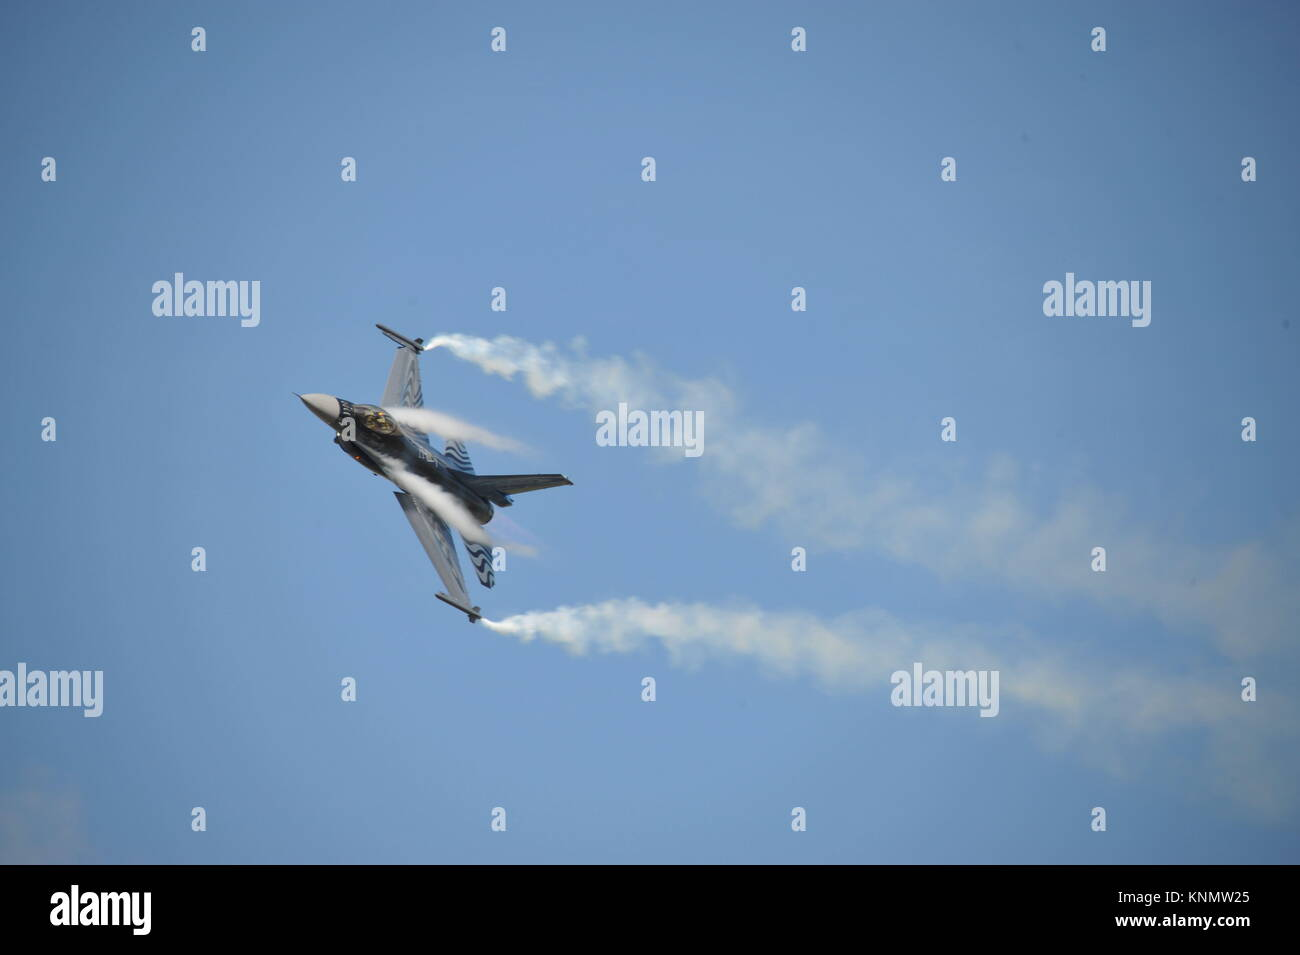 Lockheed Martin General Dynamics f-16 fighting falcon from Belgium during an airshow with condensation going over - Stock Image